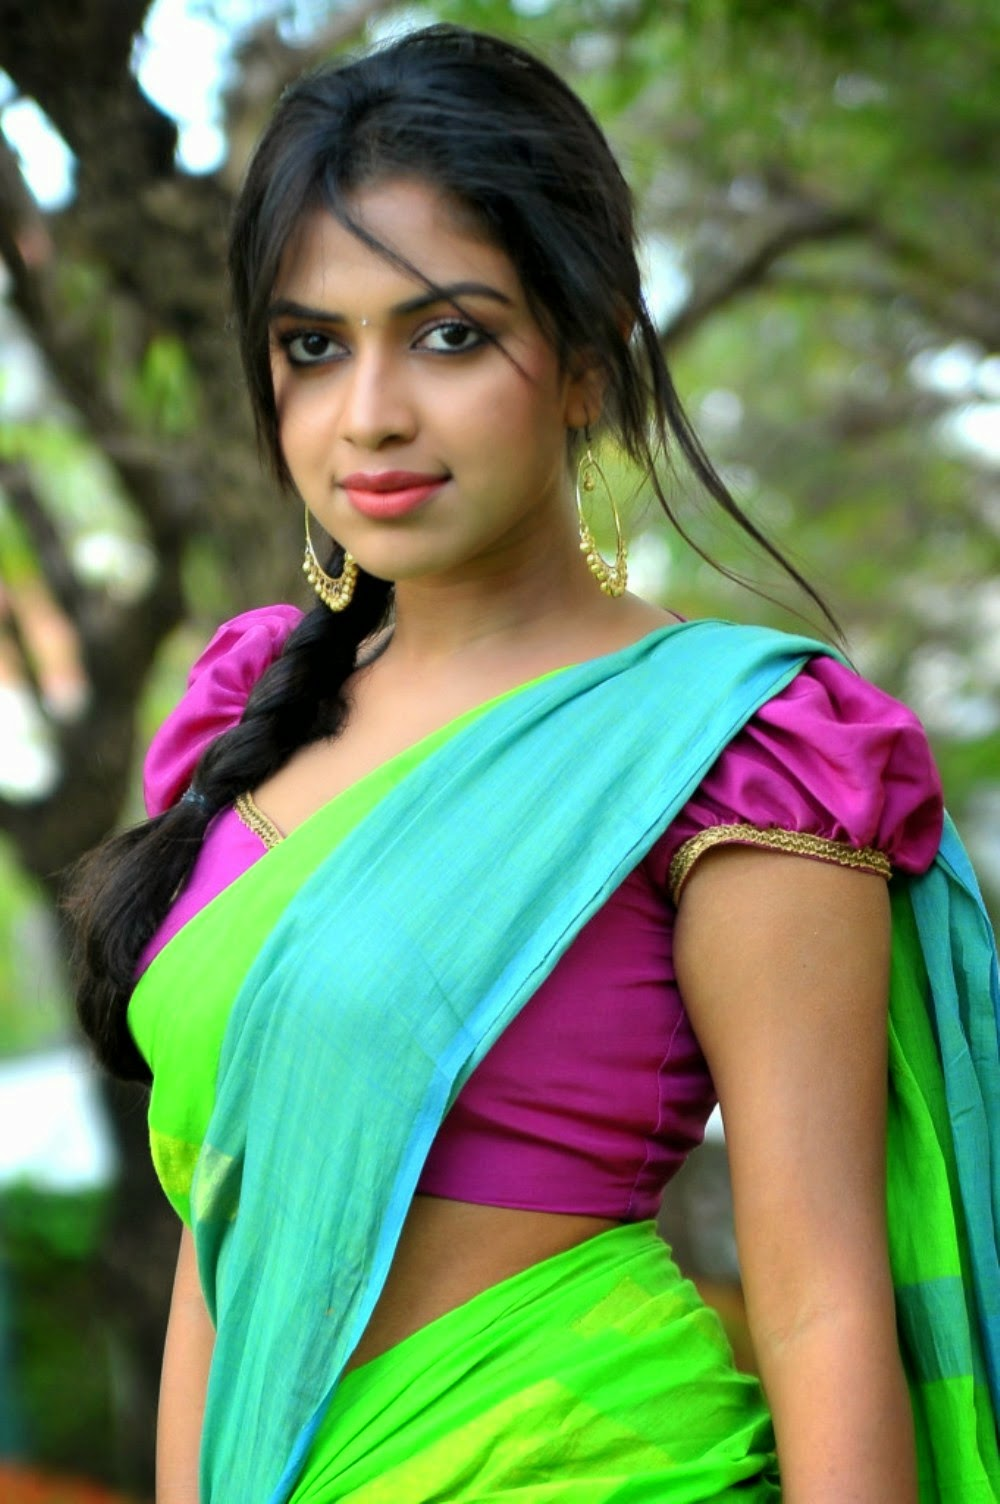 Hot nude south indian young teen girl you